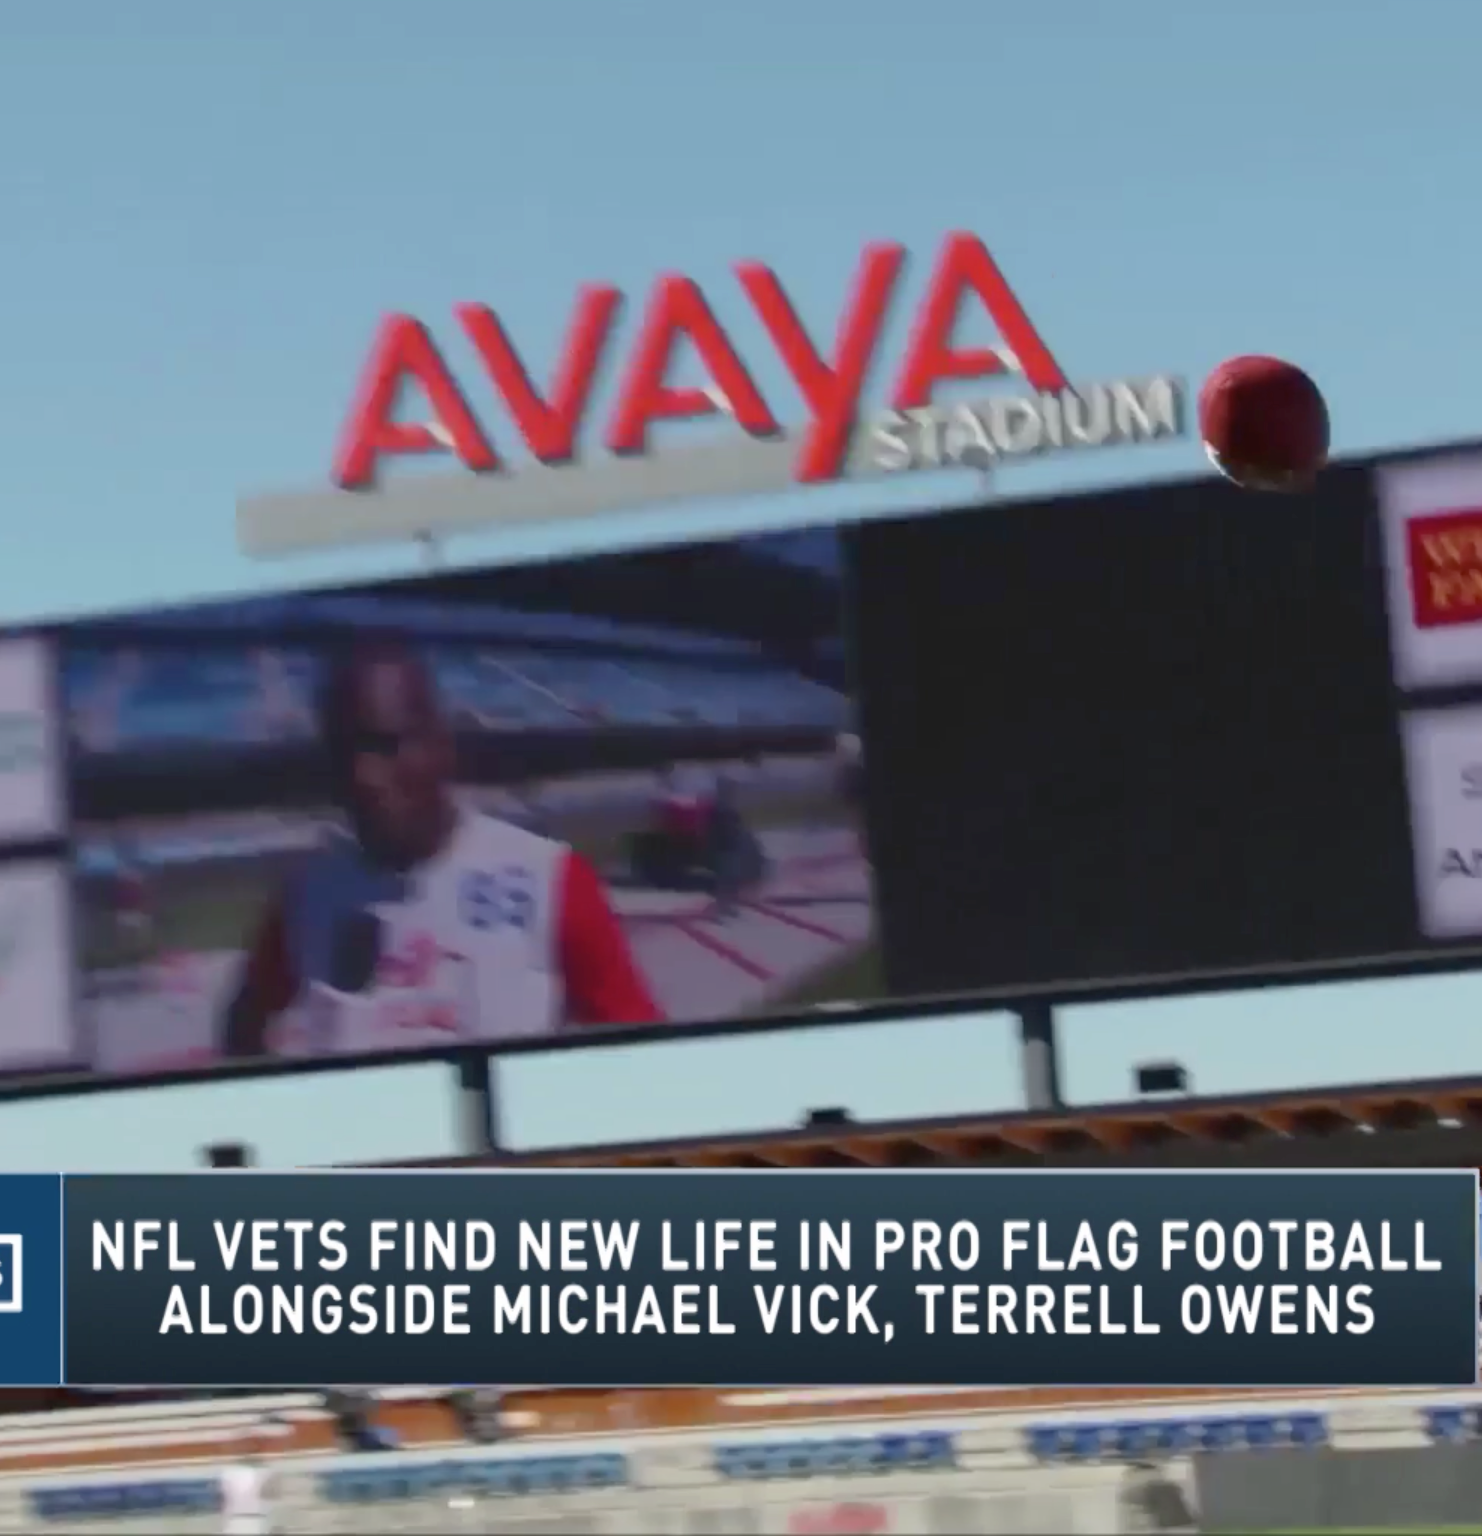 Michael Vick's first flag football game ends with him throwing eight touchdowns